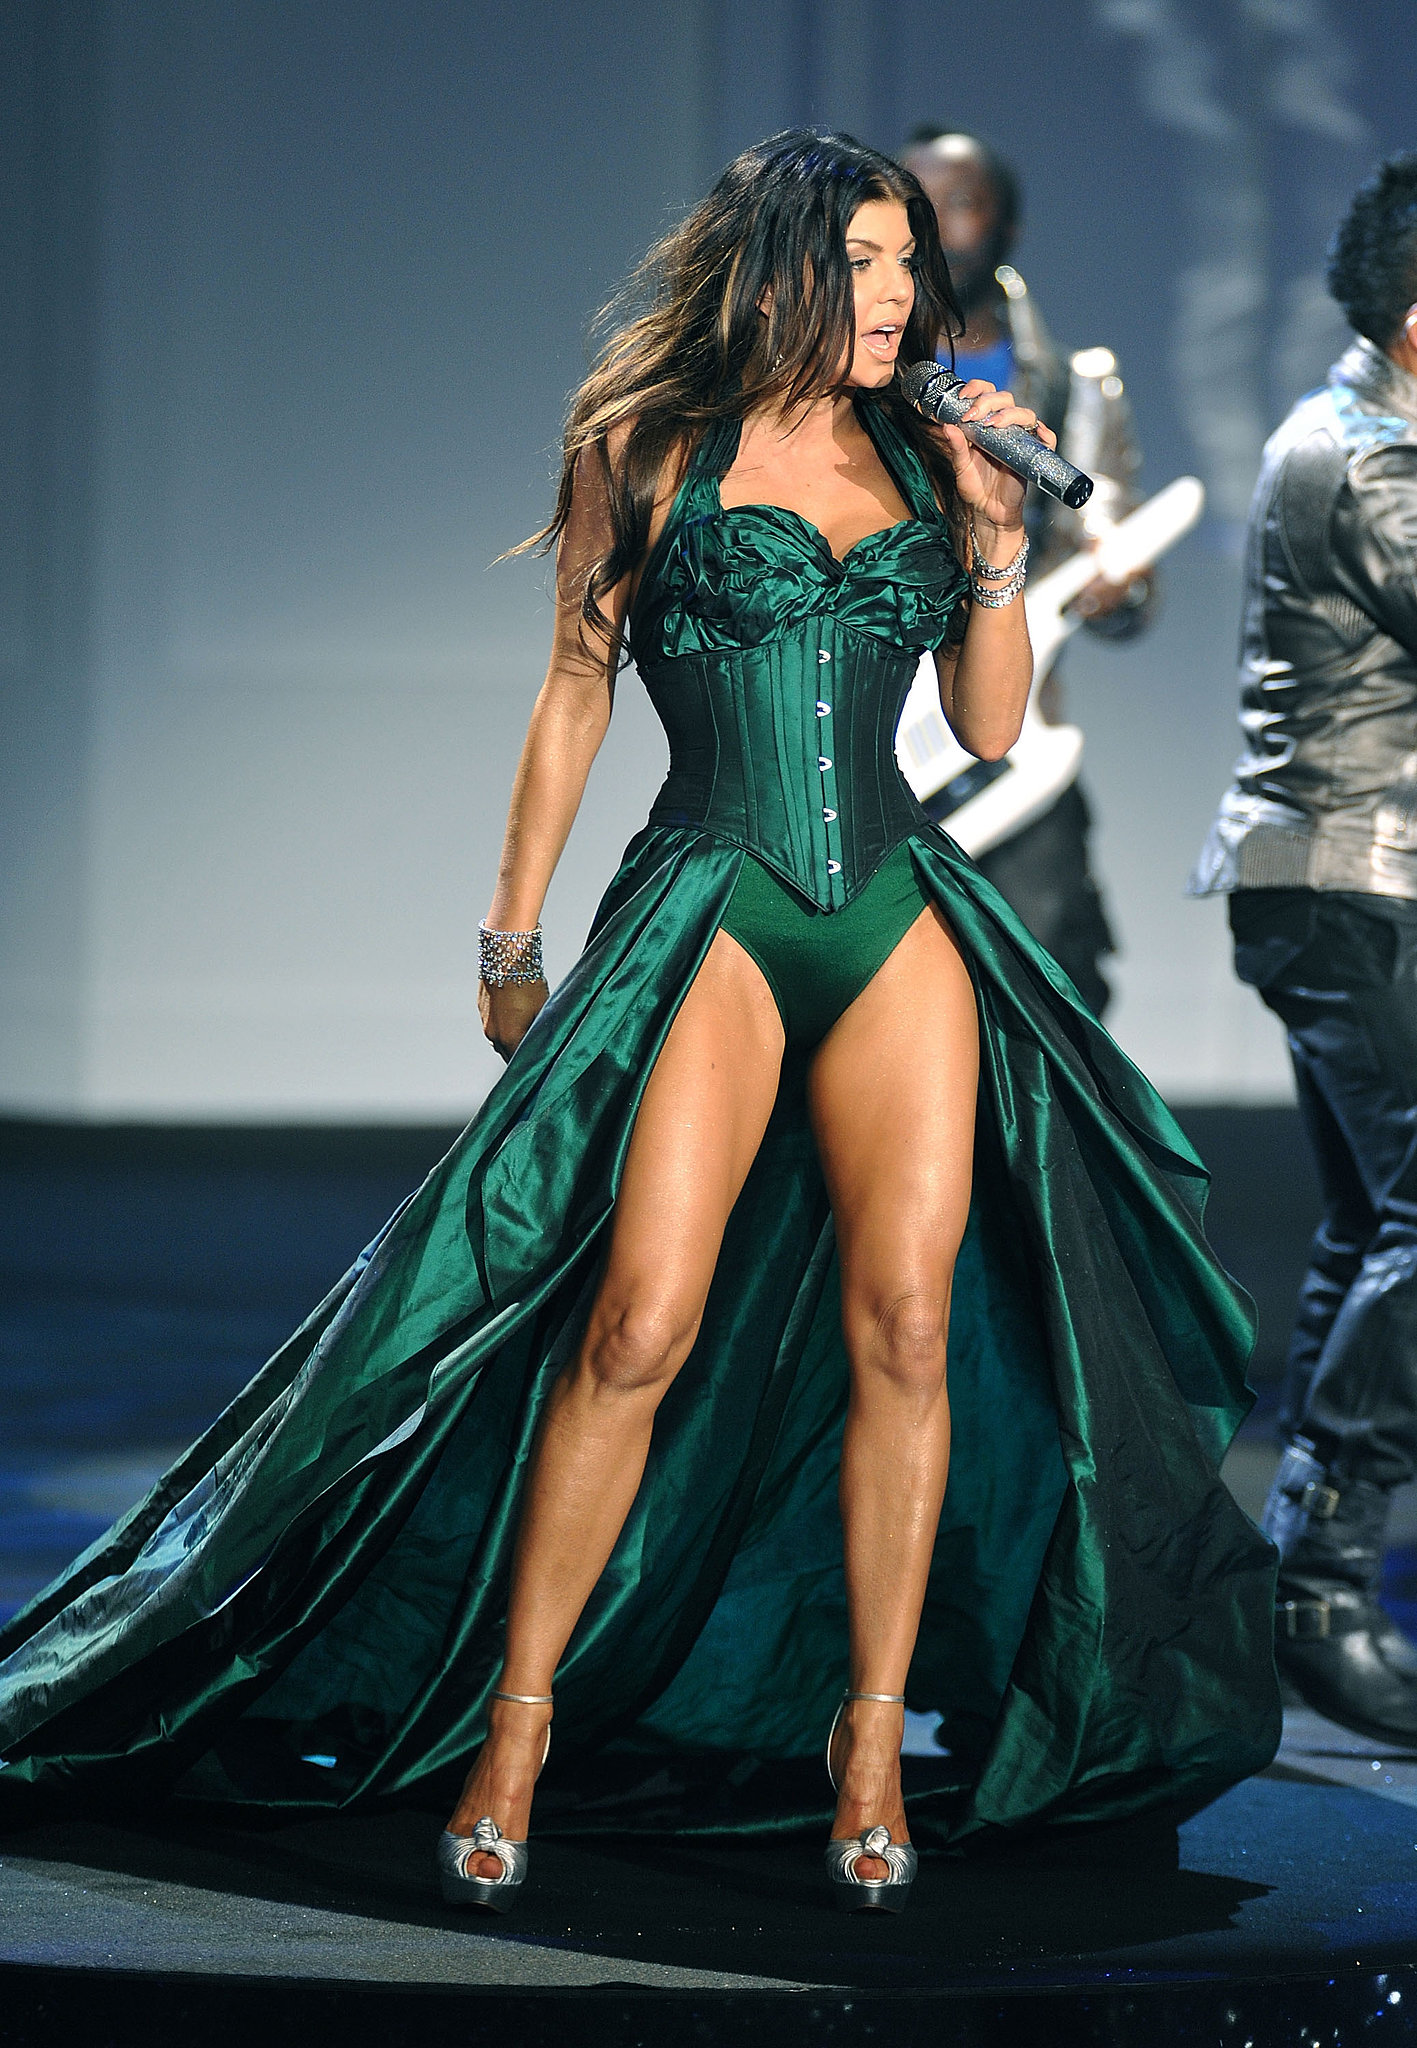 Fergie rocked an amazing emerald green dress while performing in 2009.